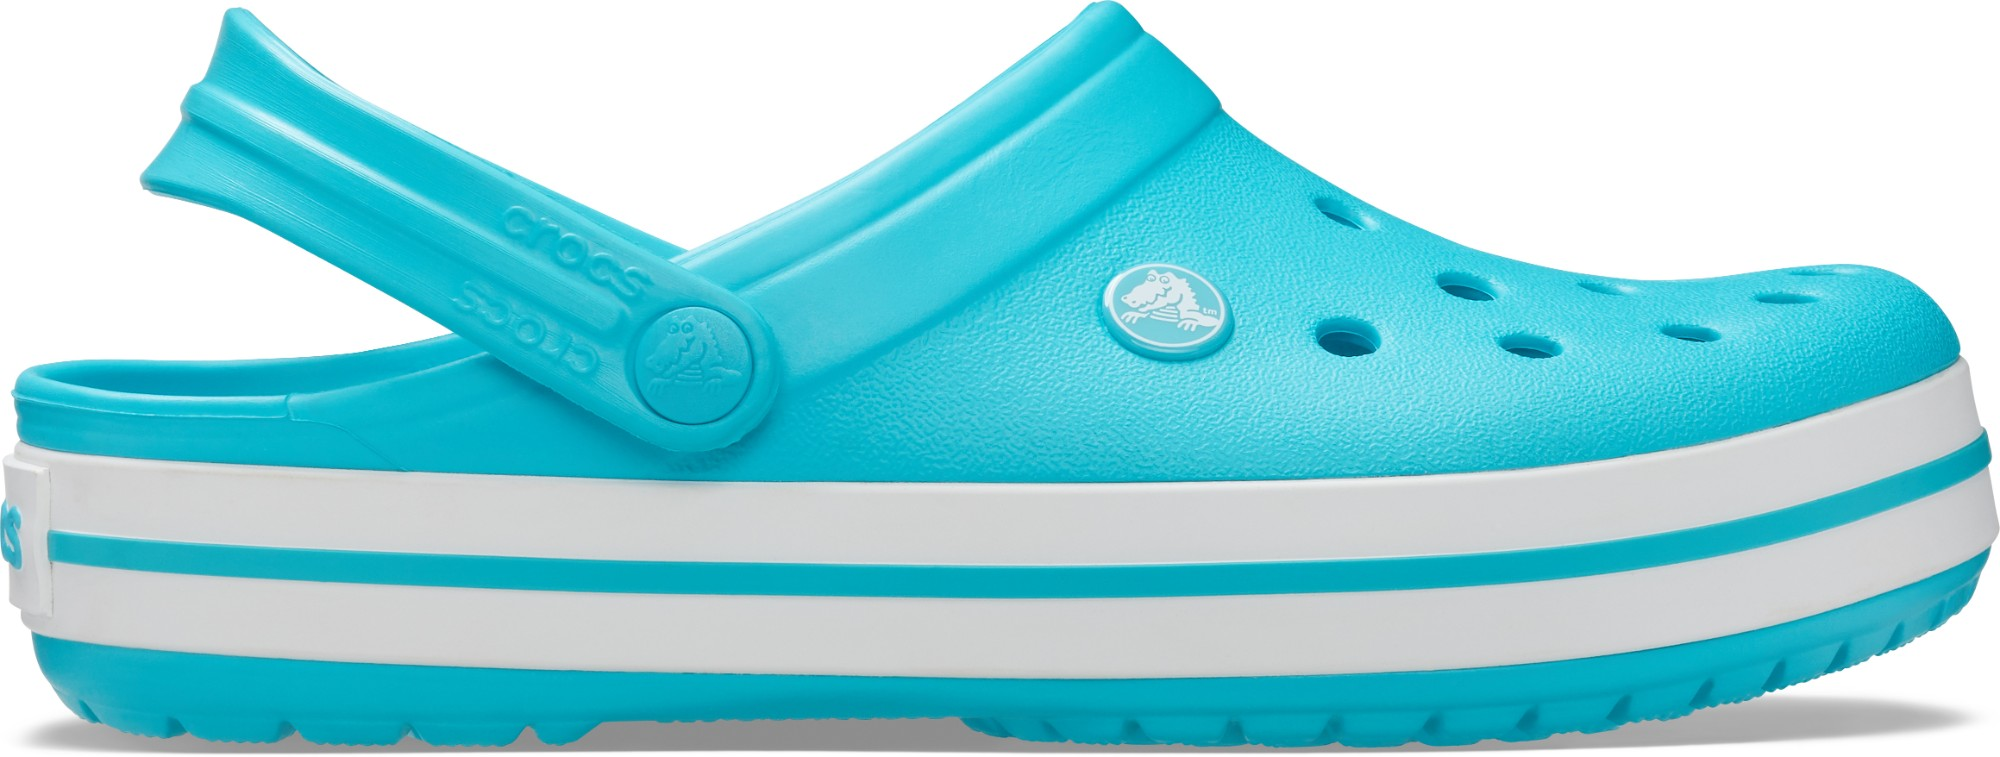 Crocs™ Crocband™ Digital Aqua 36,5